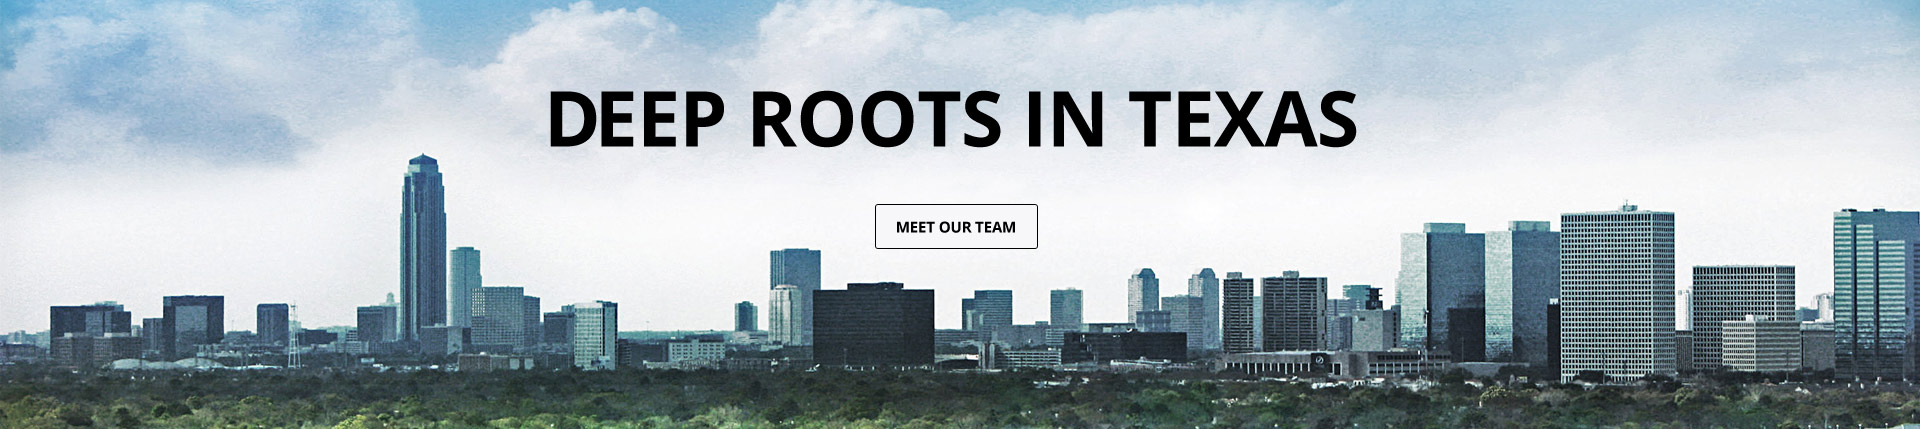 deep-roots-in-texas-aegis-title